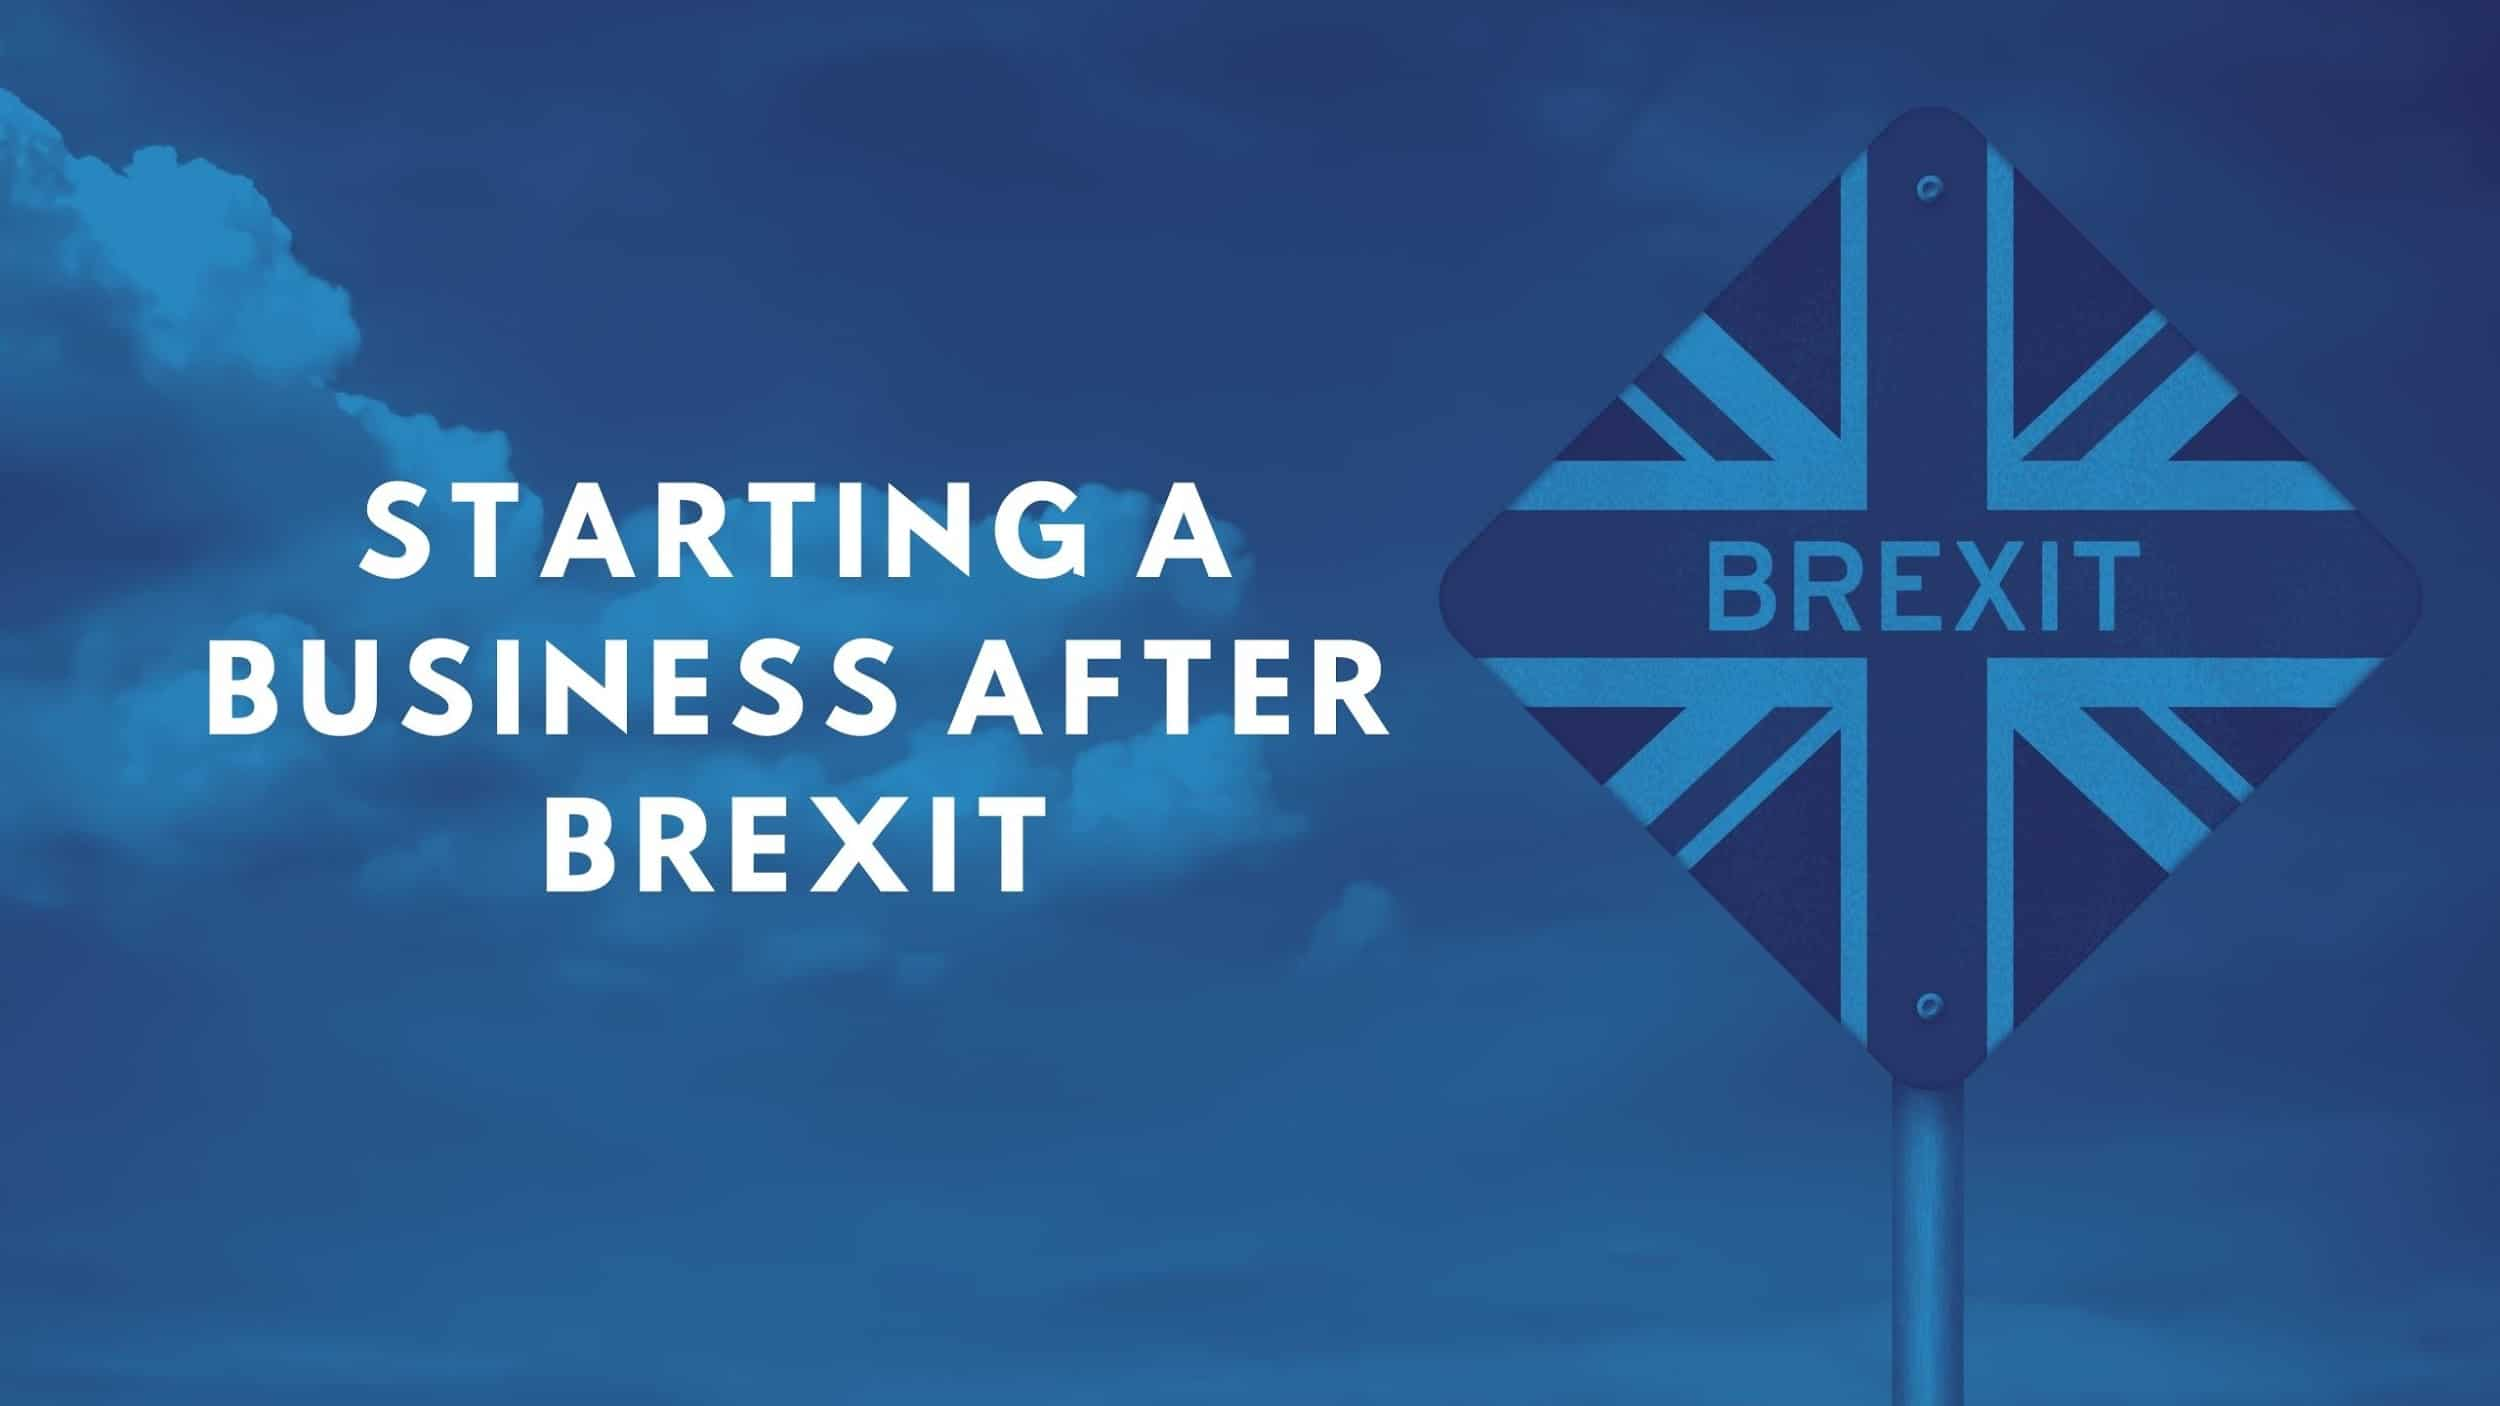 HOW TO START A BUSINESS AFTER BREXIT